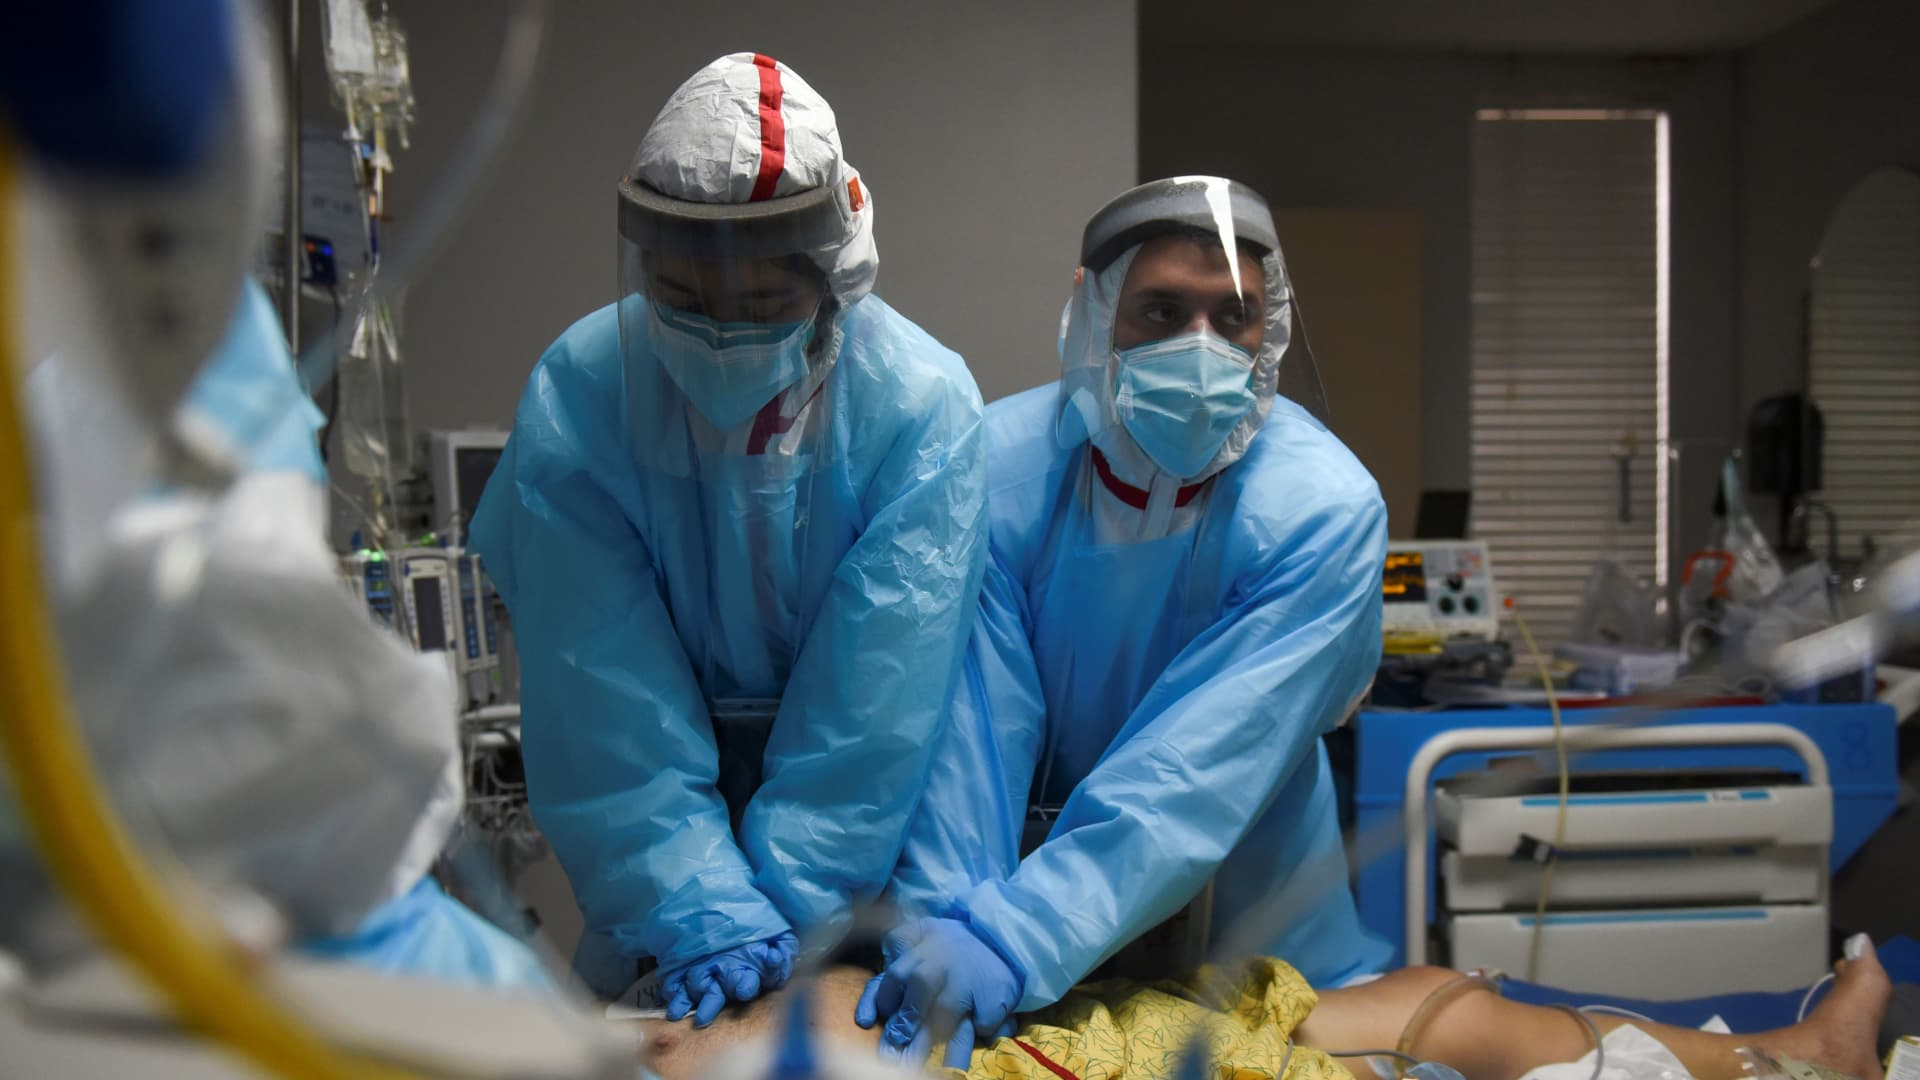 Healthcare personnel perform CPR on a patient inside a coronavirus disease (COVID-19) unit at United Memorial Medical Center as the United States nears 300,000 COVID-19 deaths, in Houston, Texas, U.S., December 12, 2020. Picture taken December 12, 2020.